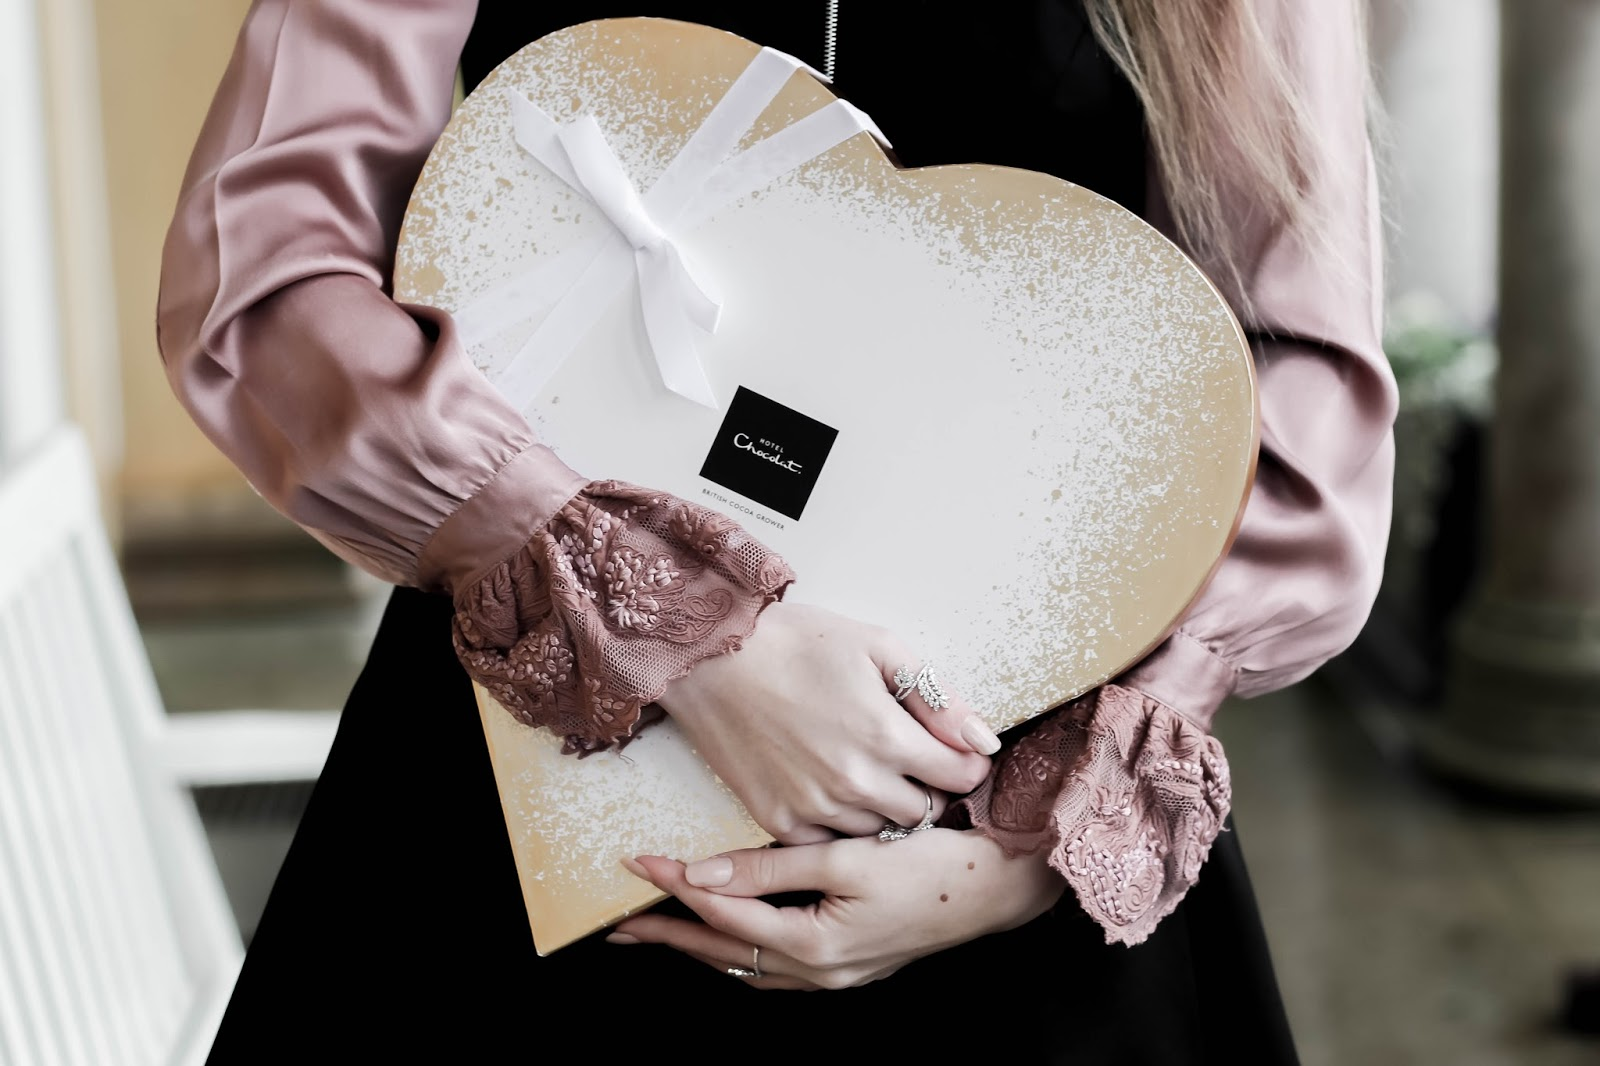 Hotel Chocolat Lifestyle Blogger Valentine's Photography